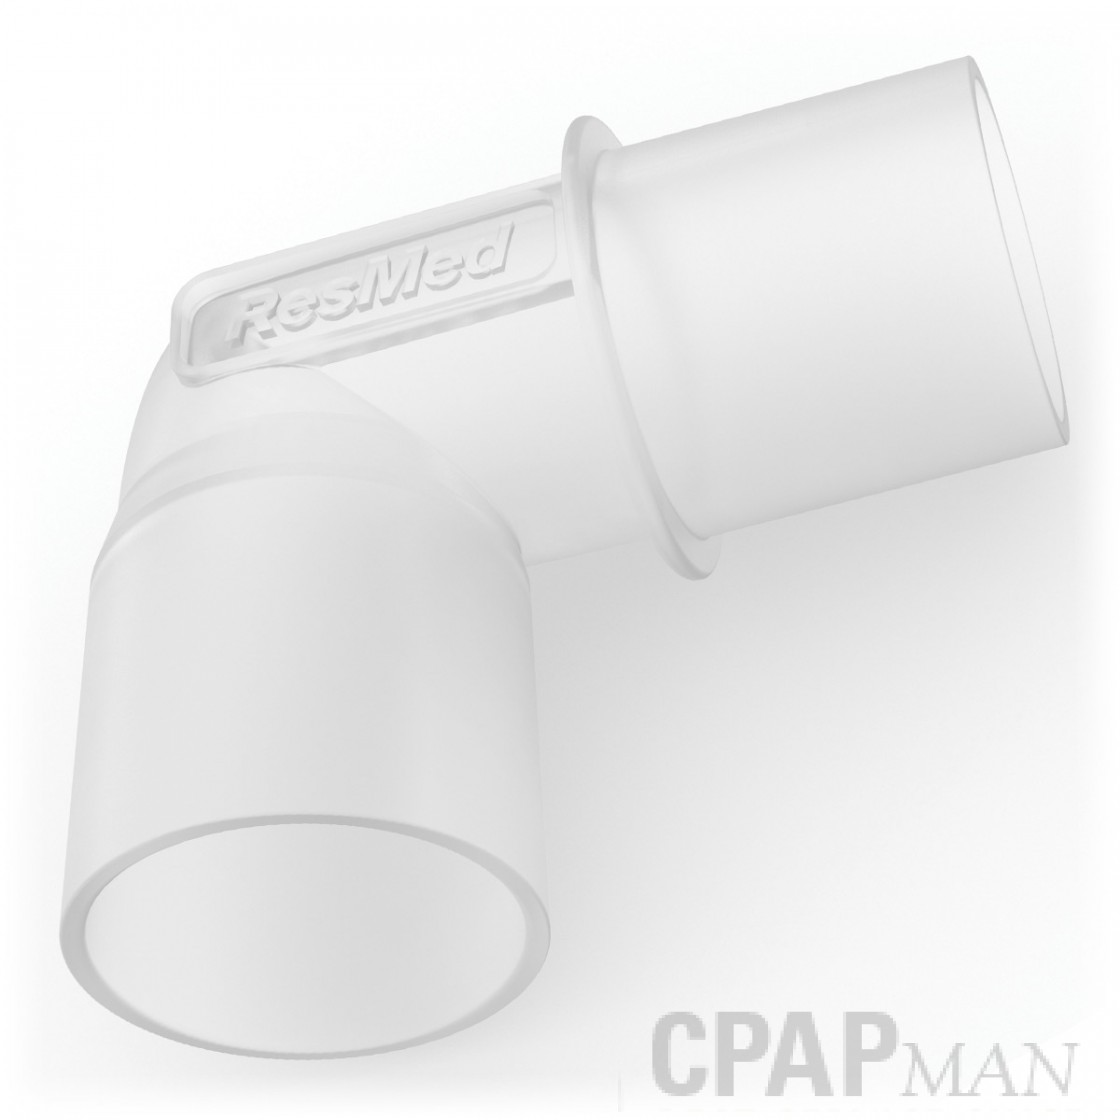 ResMed CPAP Tubing Elbow (for Plastic Tubing)